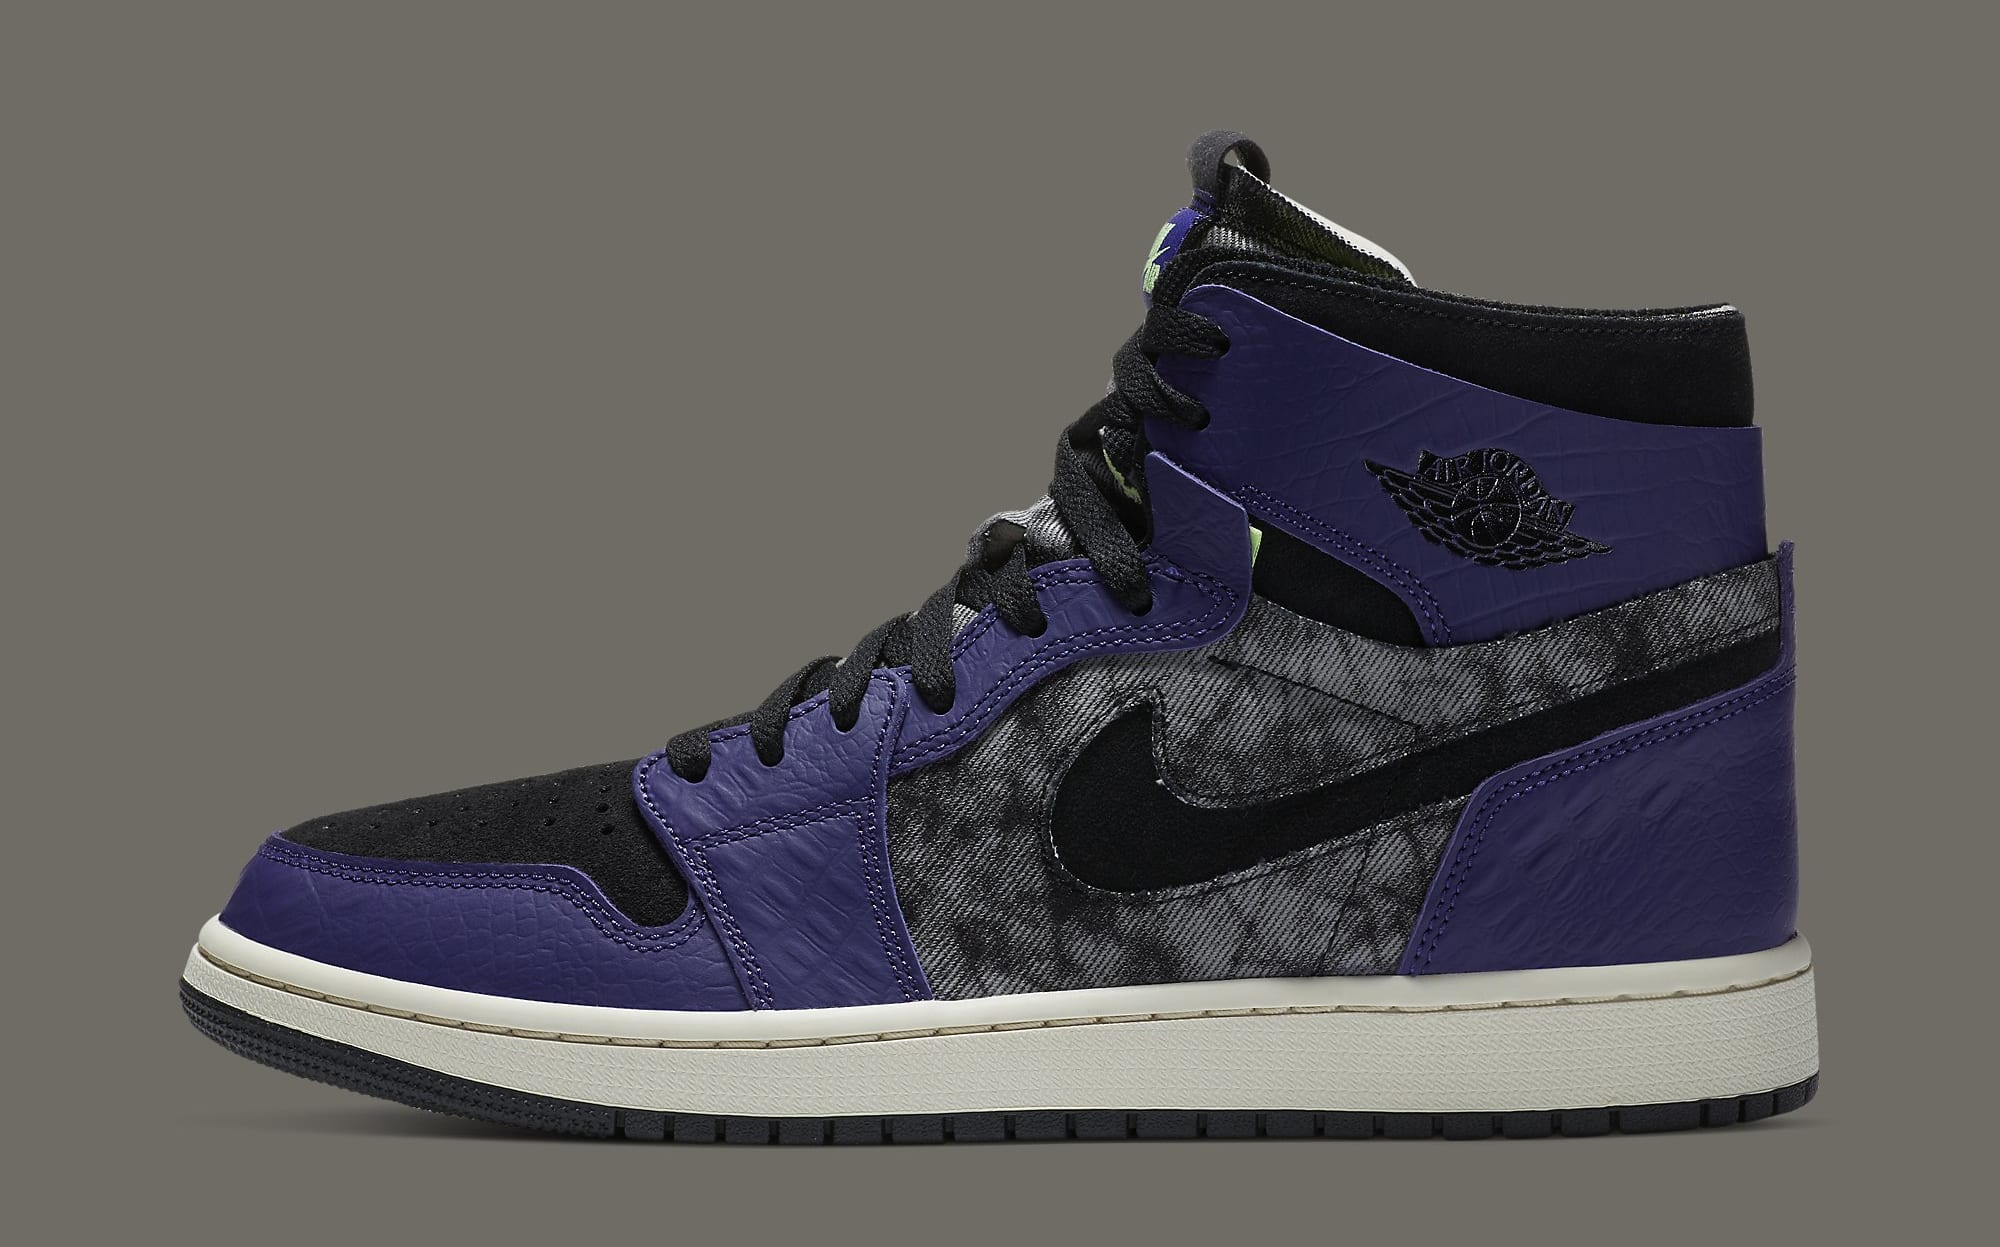 Air Jordan 1 Zoom CMFT 'Bayou Boys' DC2133-500 Lateral